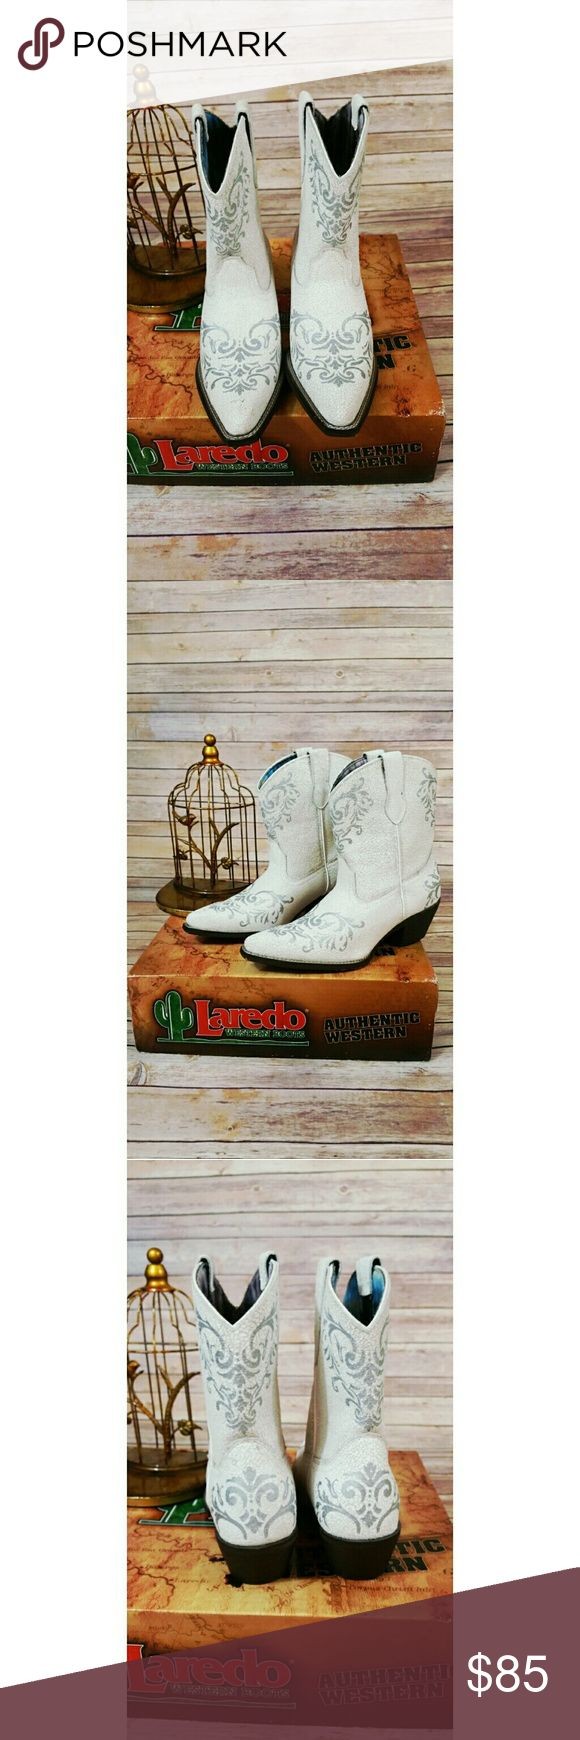 Laredo western boot white silver tattoo Sz 9.5 New in a box,no tag Laredo western boot white with silver tattoo size 9.5  Pair it with flirty floral dress for that perfect summer outfit. Laredo Shoes Ankle Boots & Booties